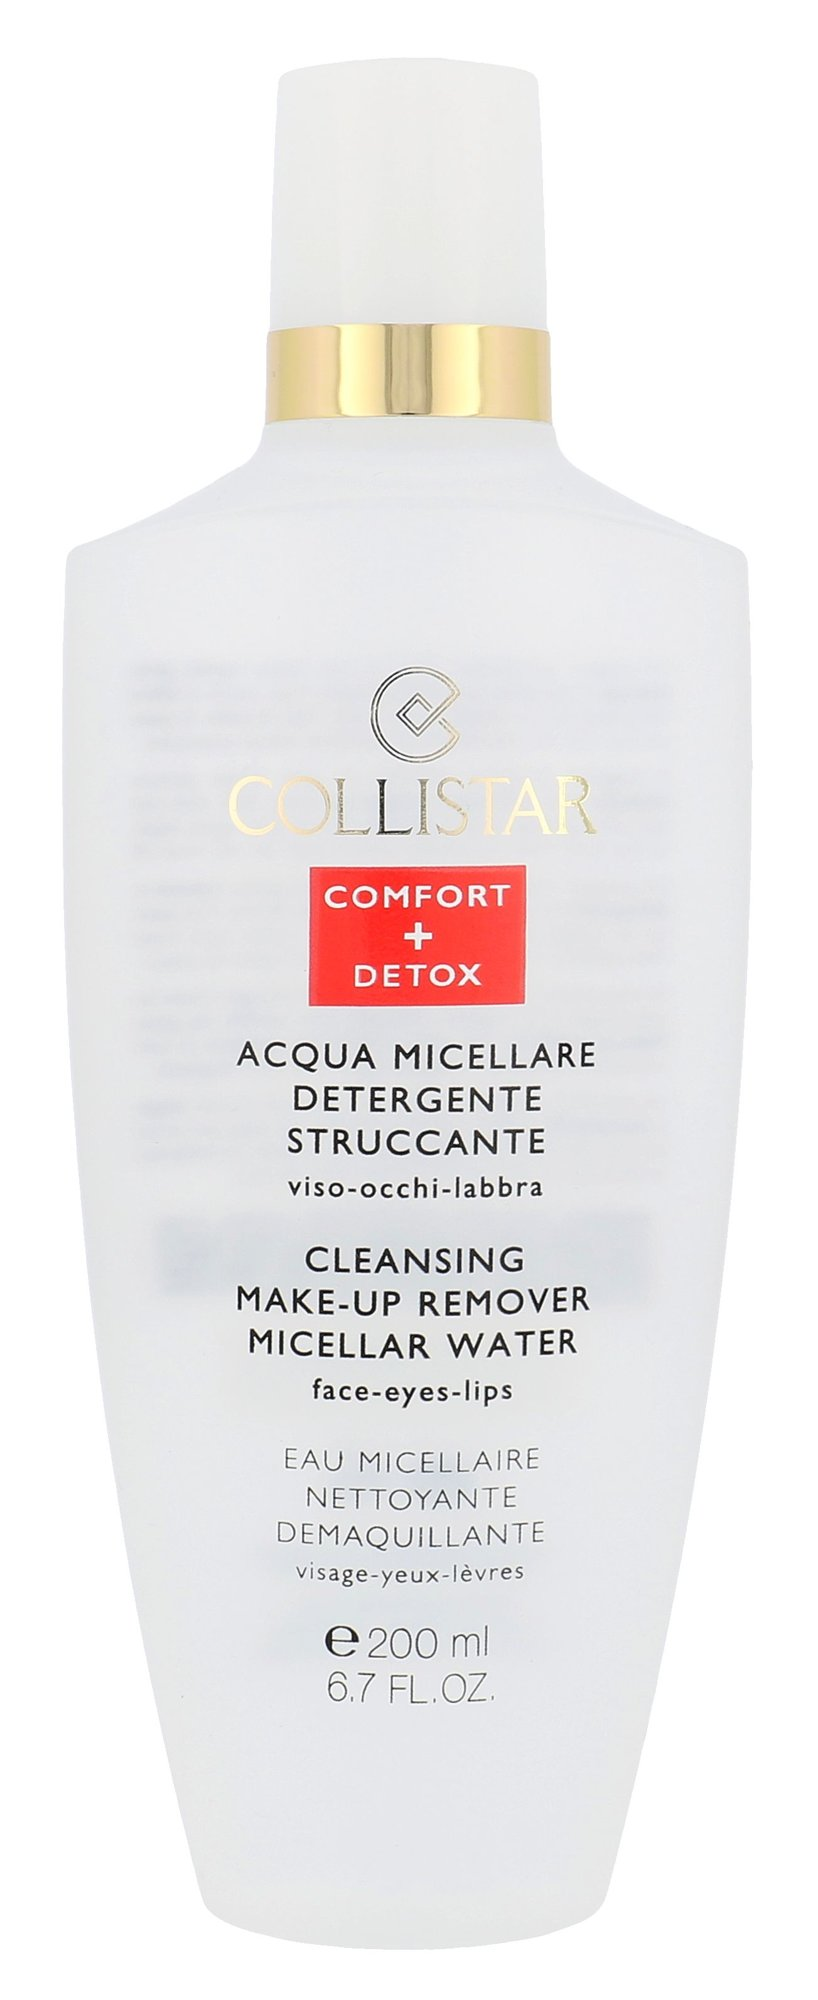 Collistar Micellar Water Cleansing Make-up Remover Cosmetic 200ml